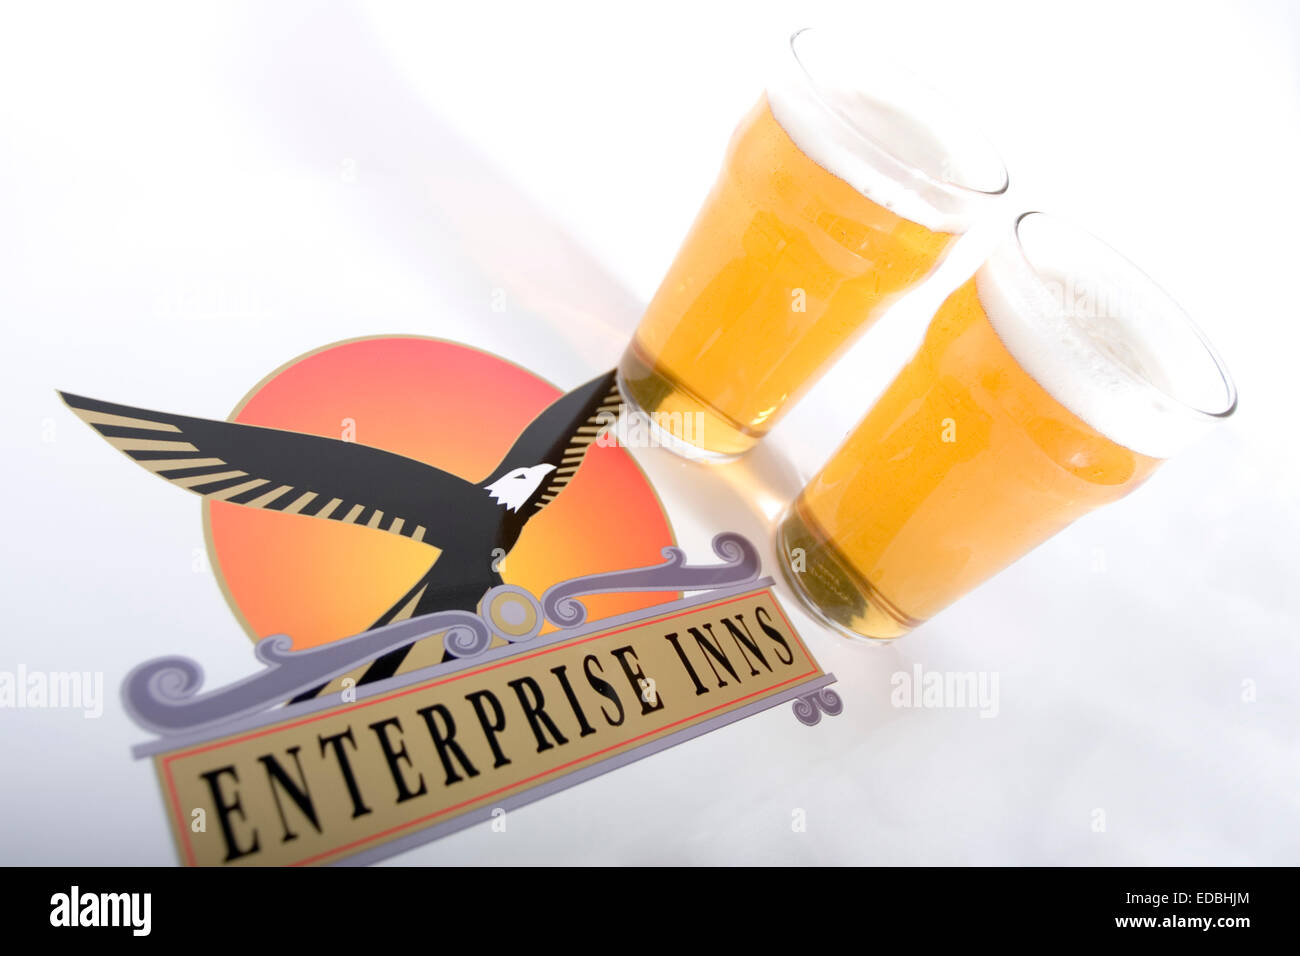 Illustrative image of the Enterprise Inns logo and two pints of larger - Stock Image